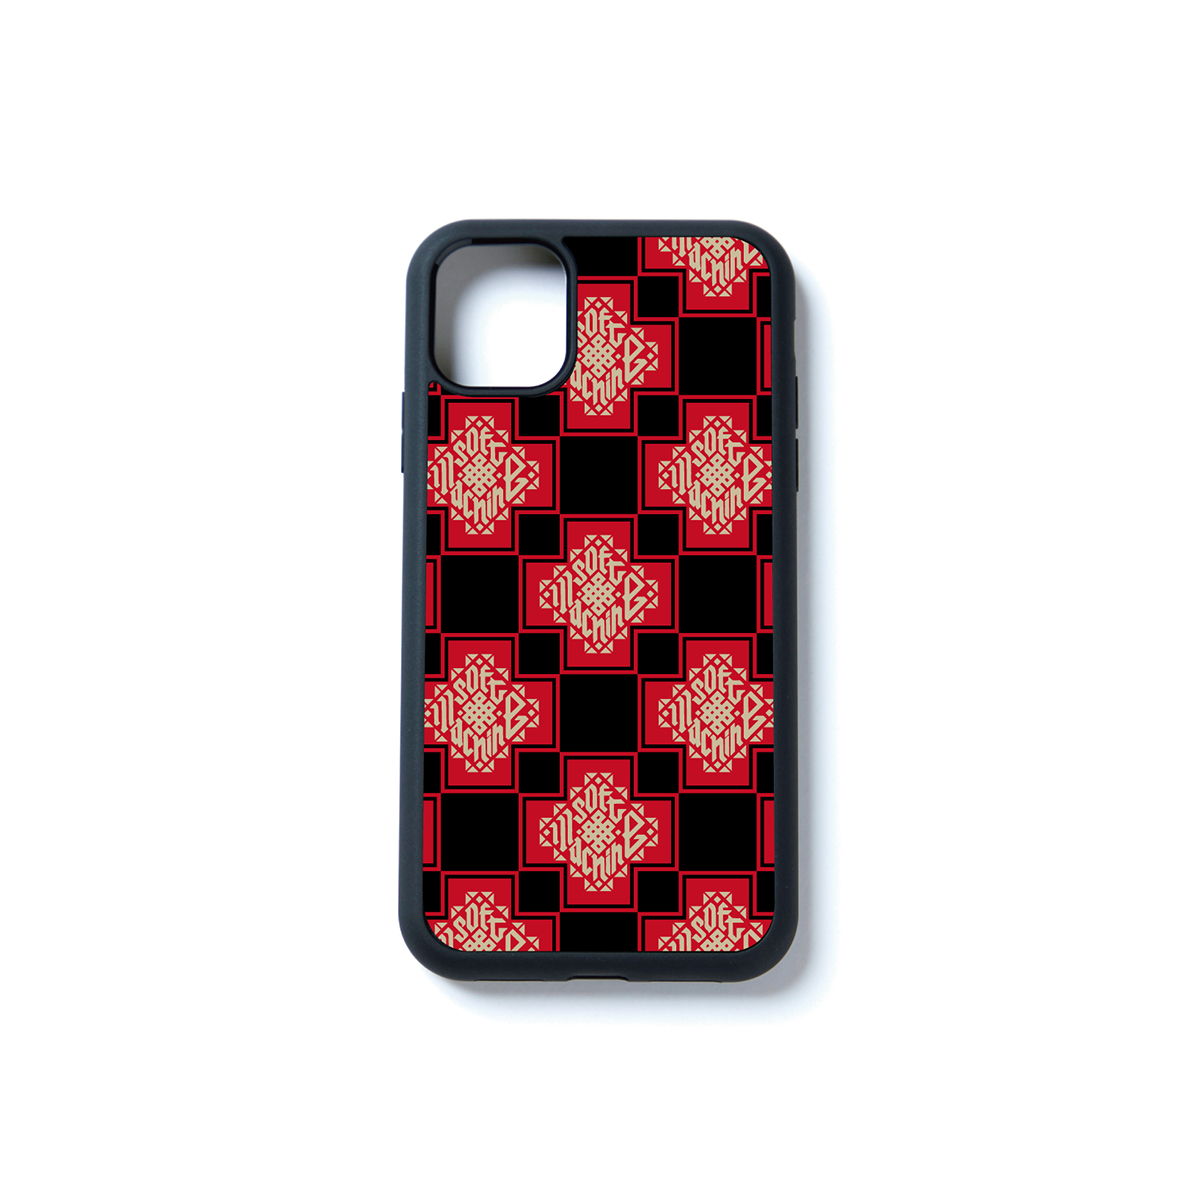 tribus_iphonecase_red